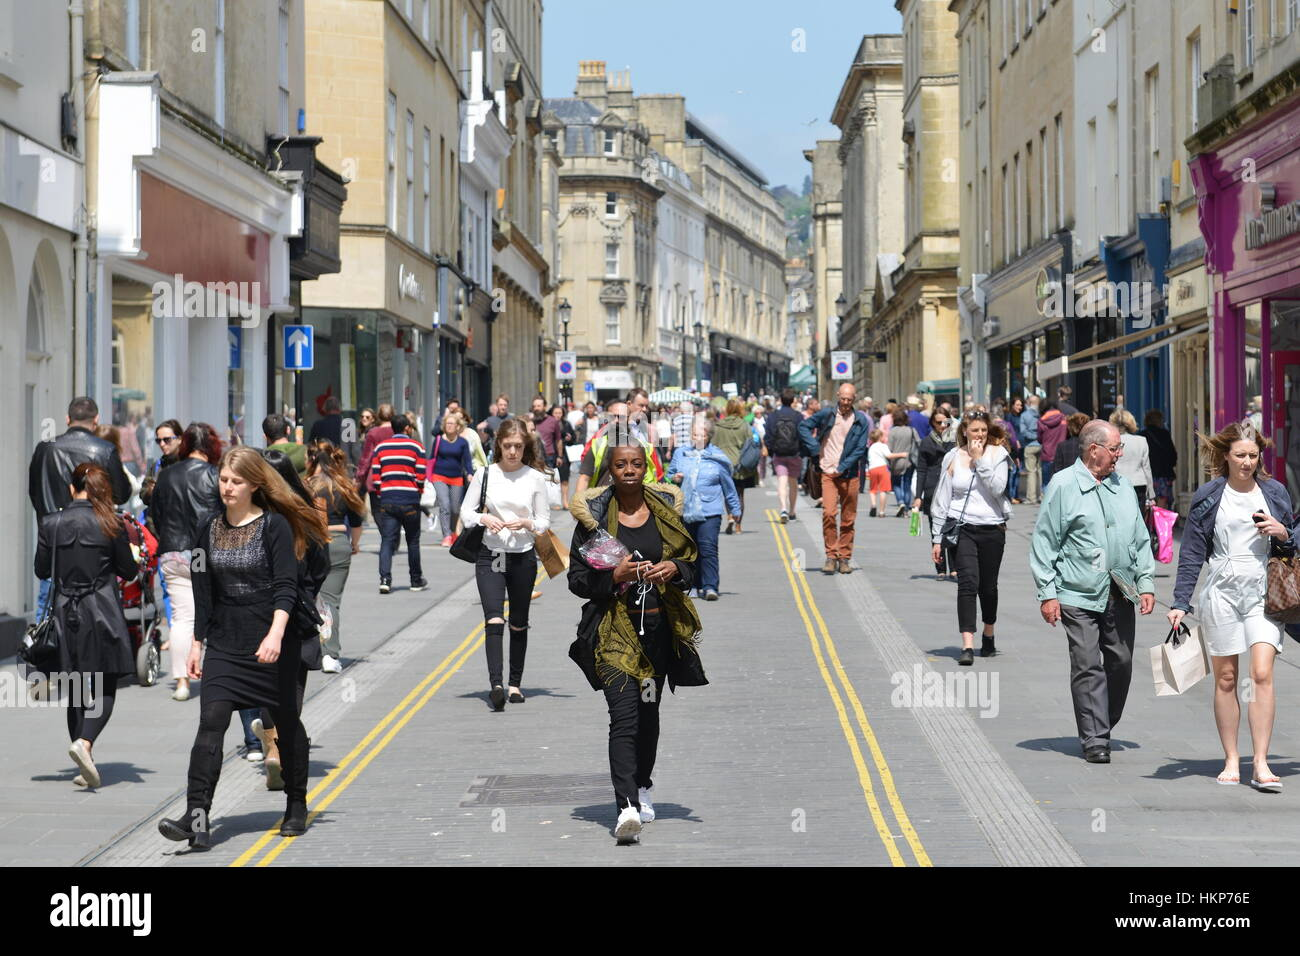 Bath, UK - May 13, 2016: People walk on a city centre street. The Somerset city is a popular for its shopping and Stock Photo